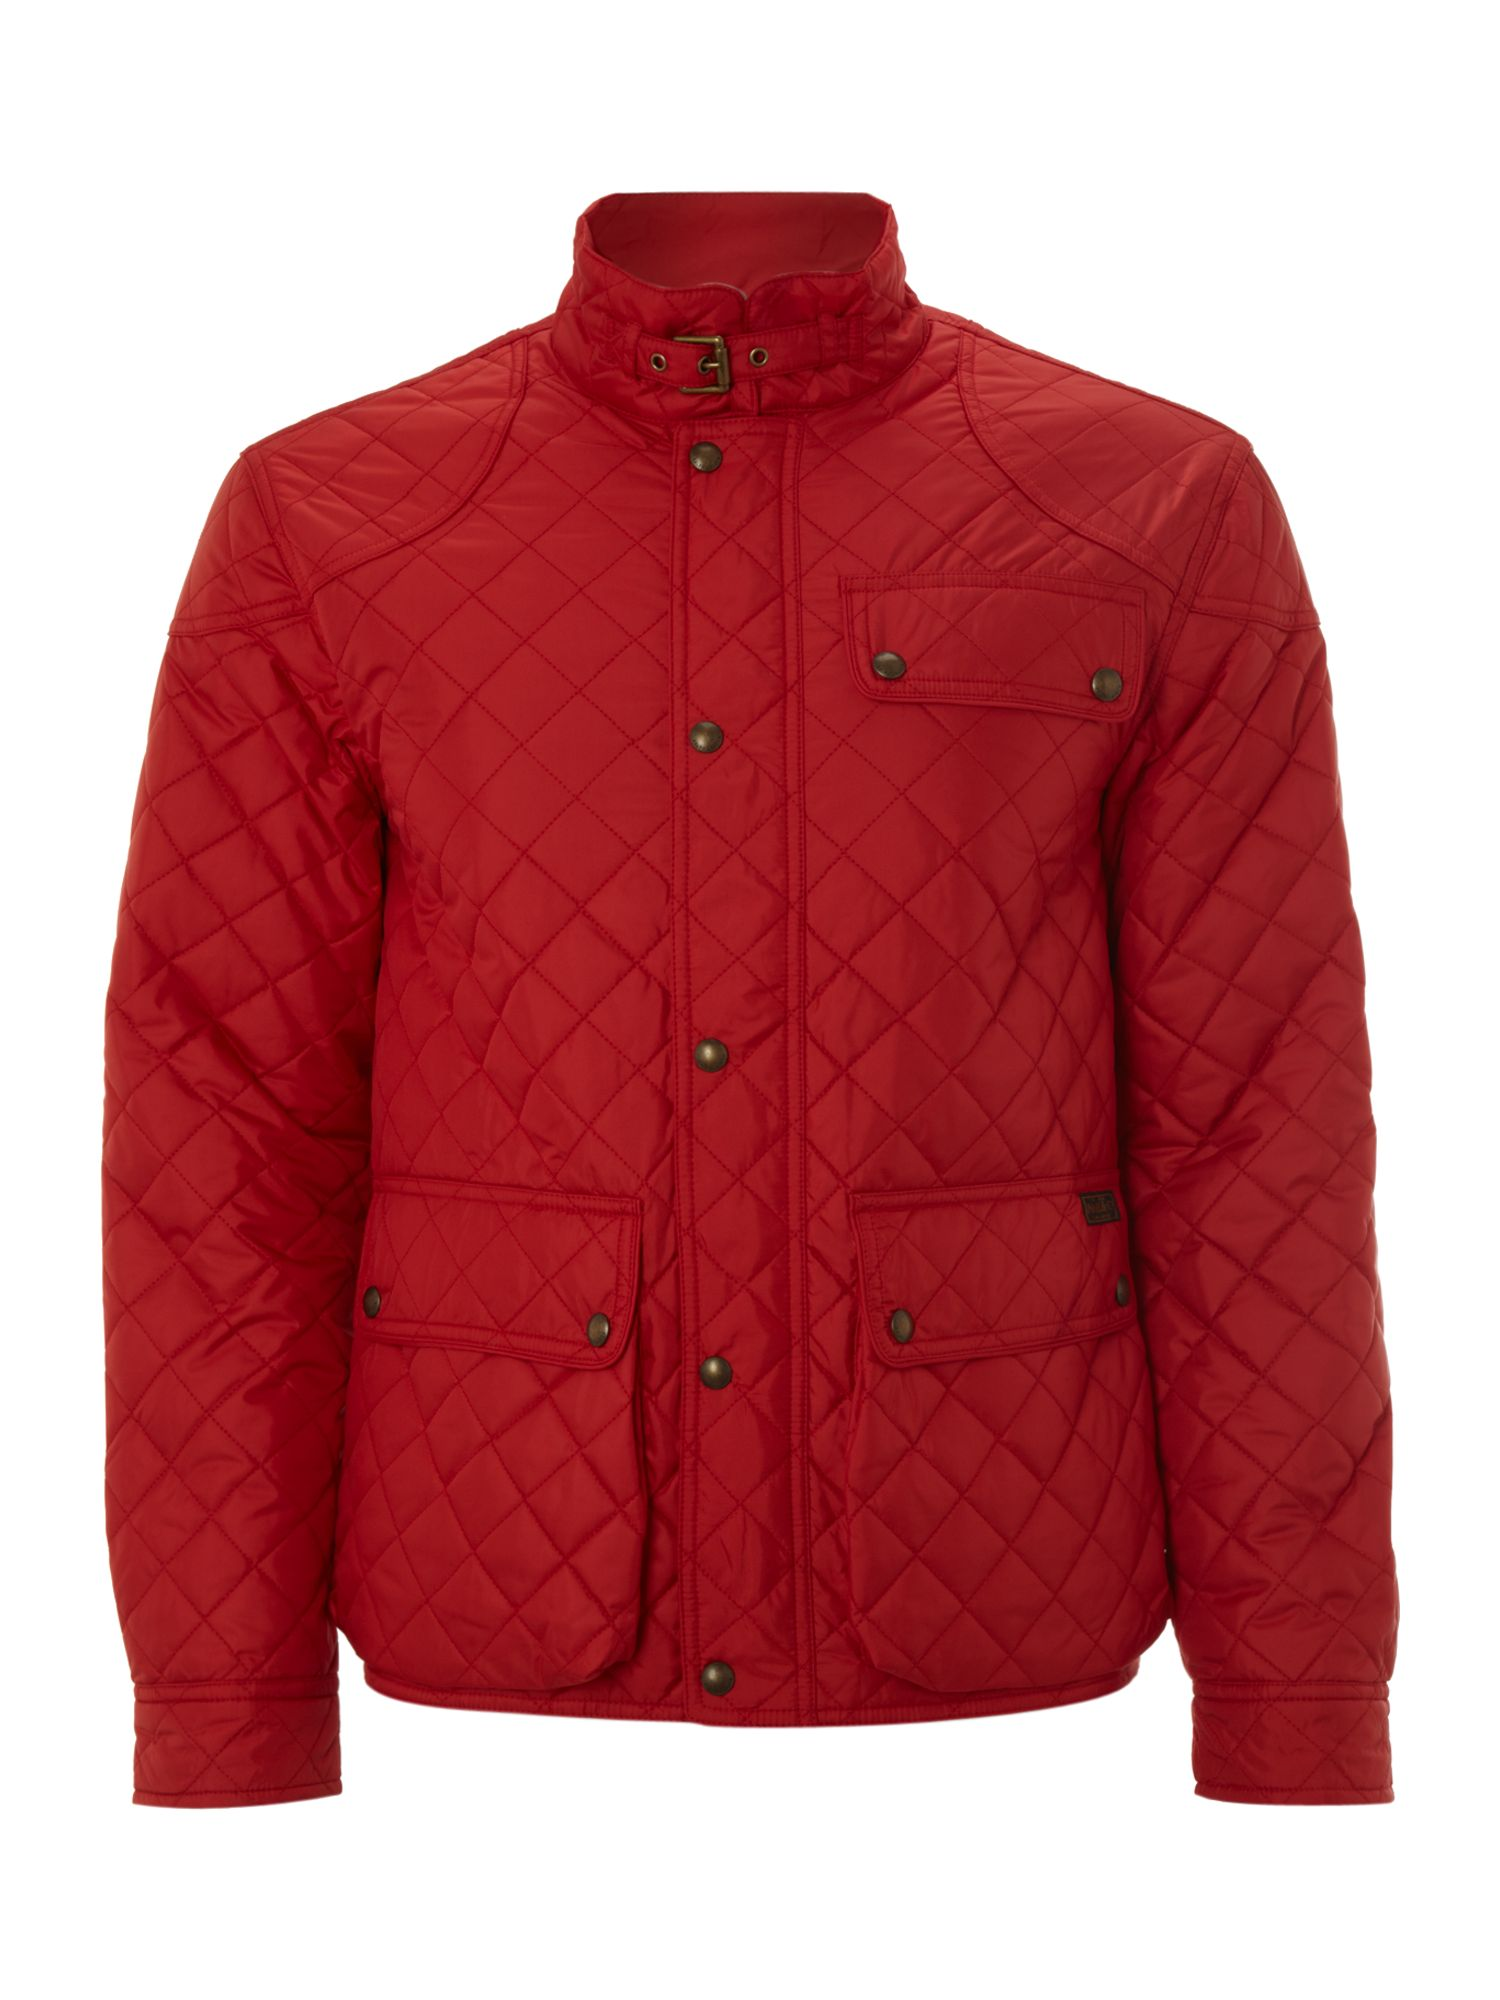 Polo Ralph Lauren Cadwell Quilted Bomber Jacket In Red For